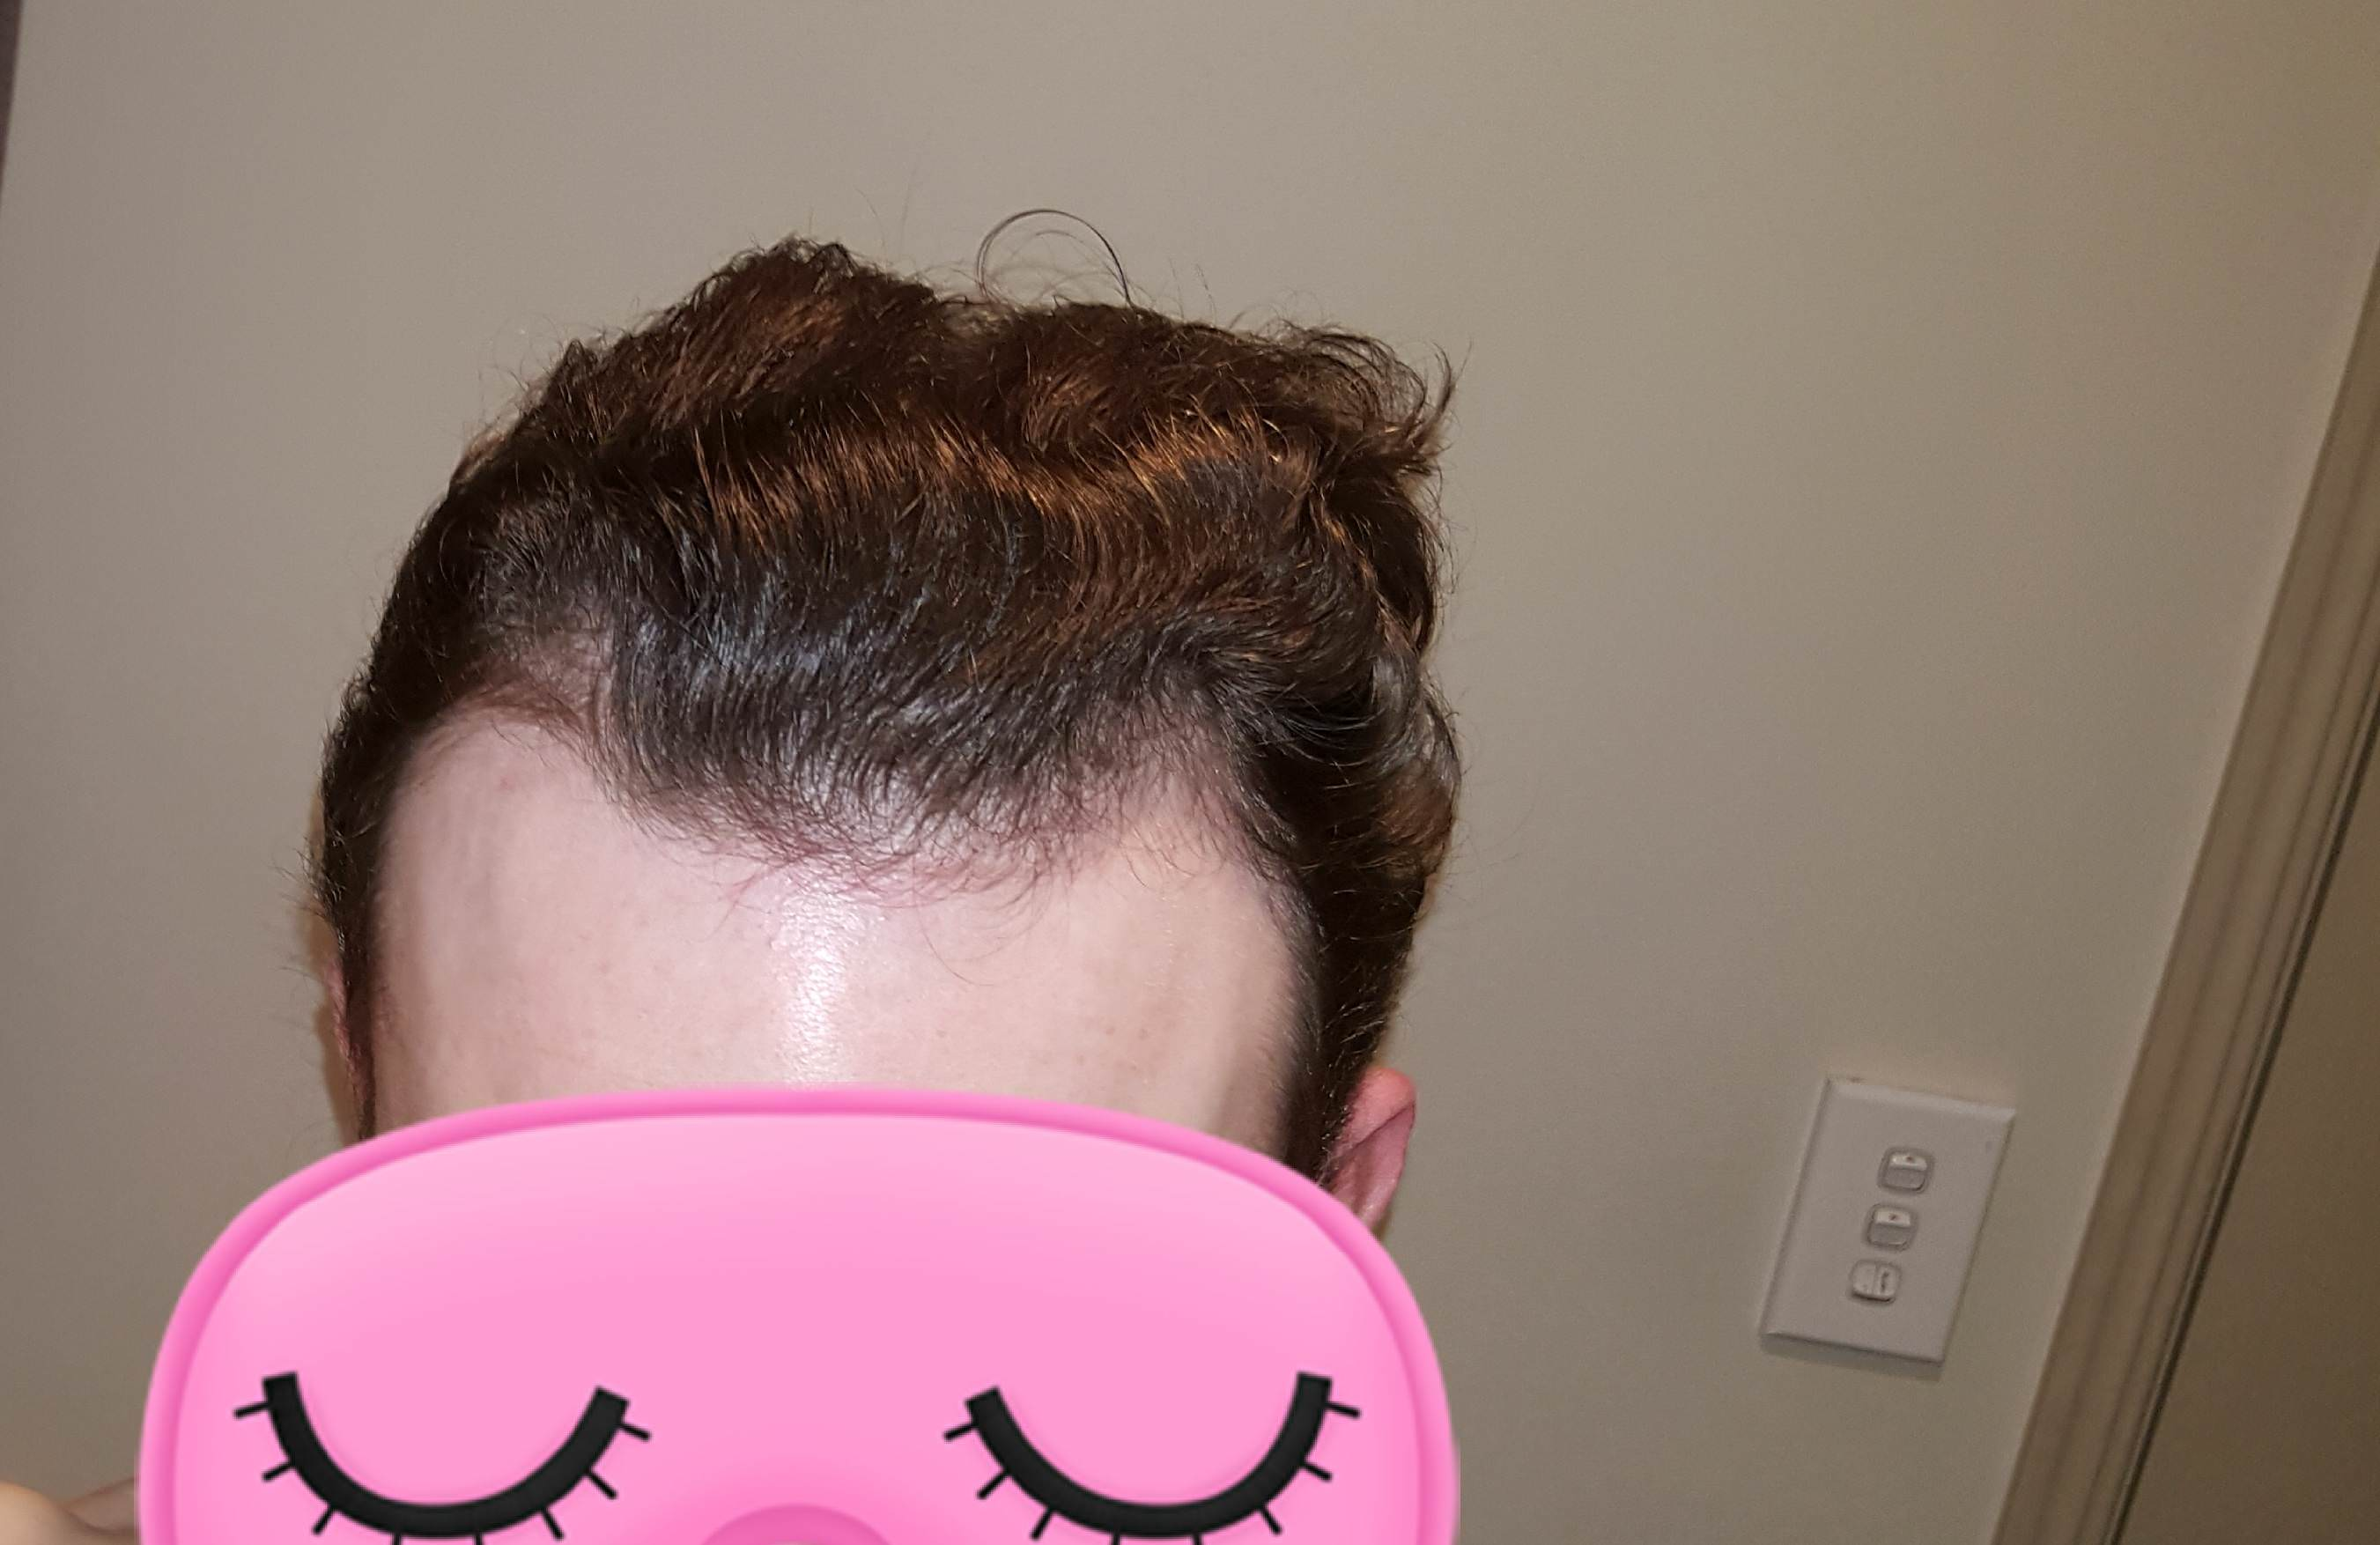 i am 19 is finasteride a good choice for this thinning from